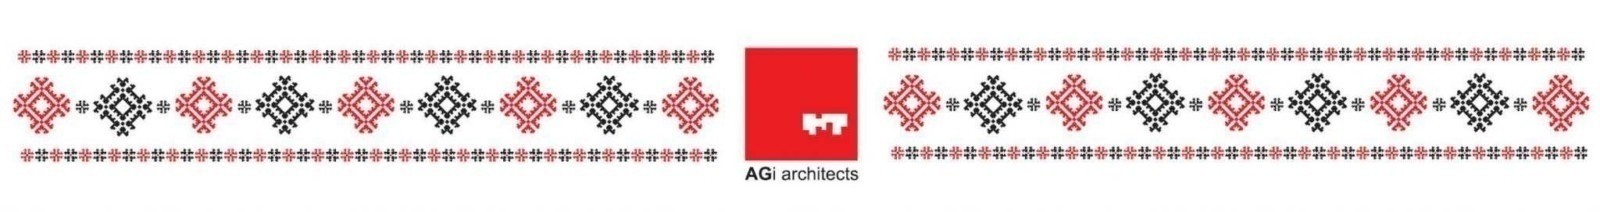 AGi Architects greeting card with traditional pattern